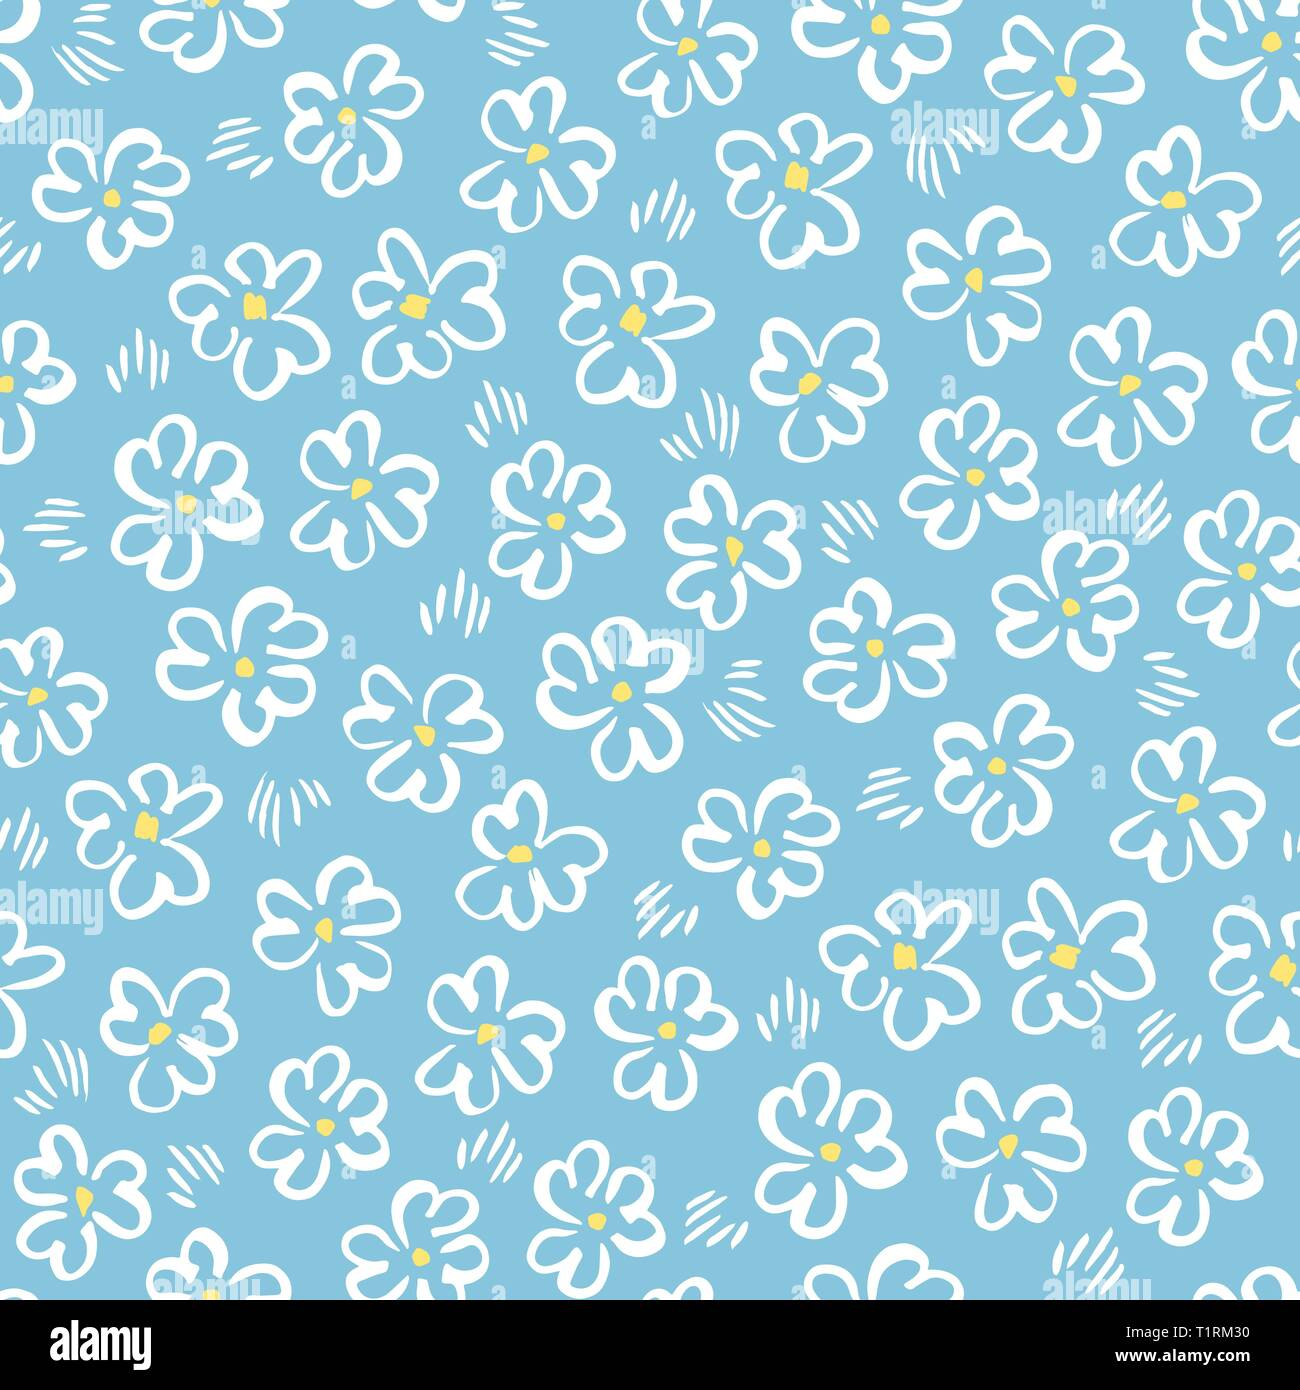 Cute white abstract hand-drawn daisis on blue background vector seamless pattern. Whimsical easter floral print. Simplistic ditsy blooms. Retro minima - Stock Image